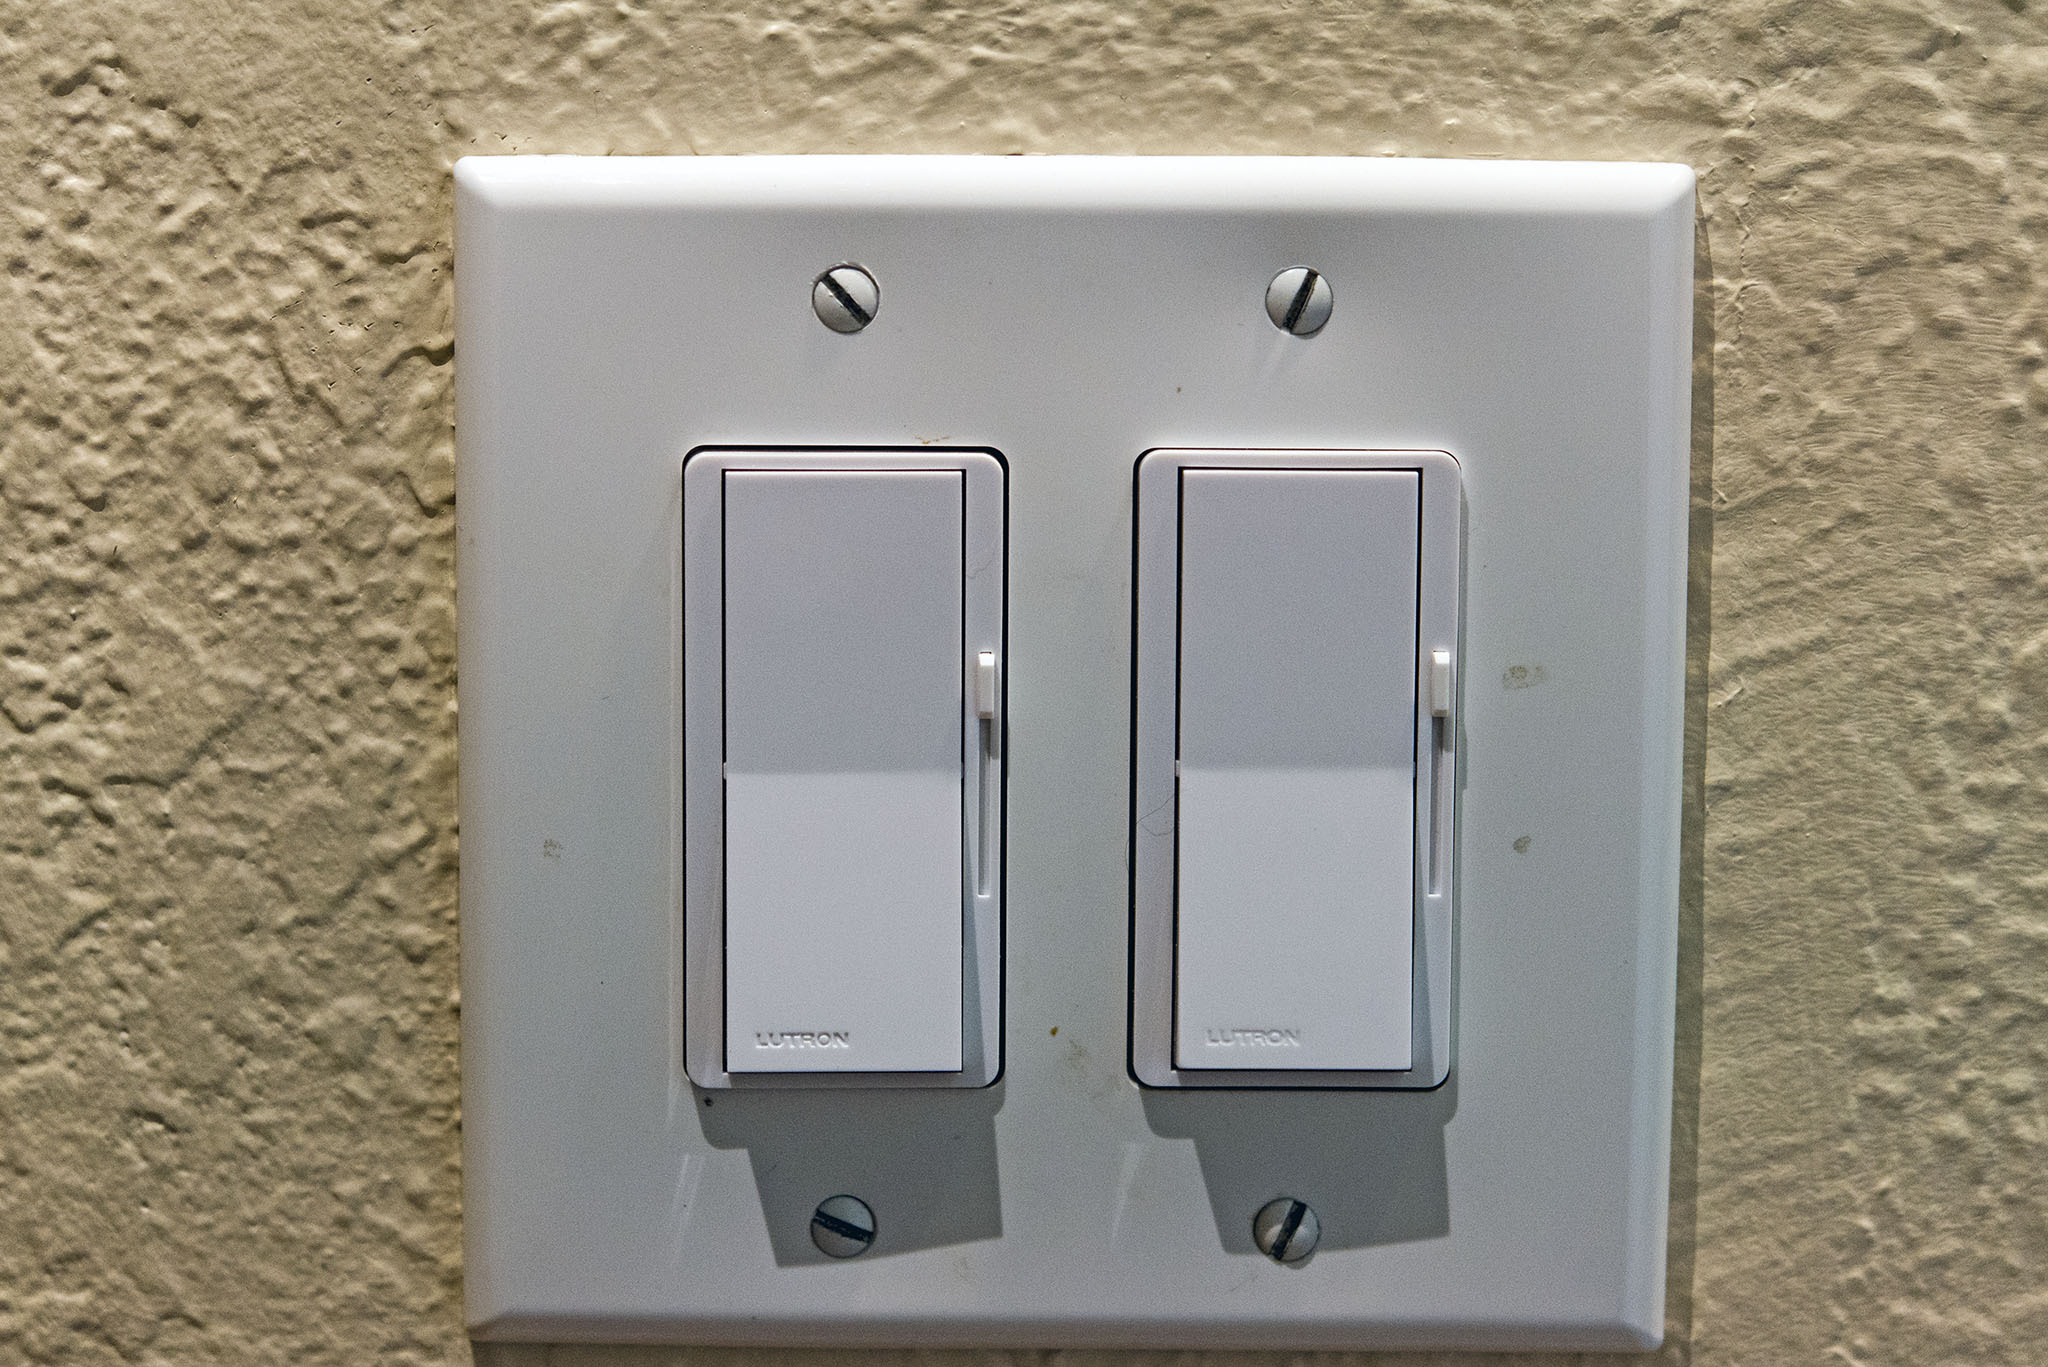 light switch with dimmer in addition light switch wiring diagram. Black Bedroom Furniture Sets. Home Design Ideas